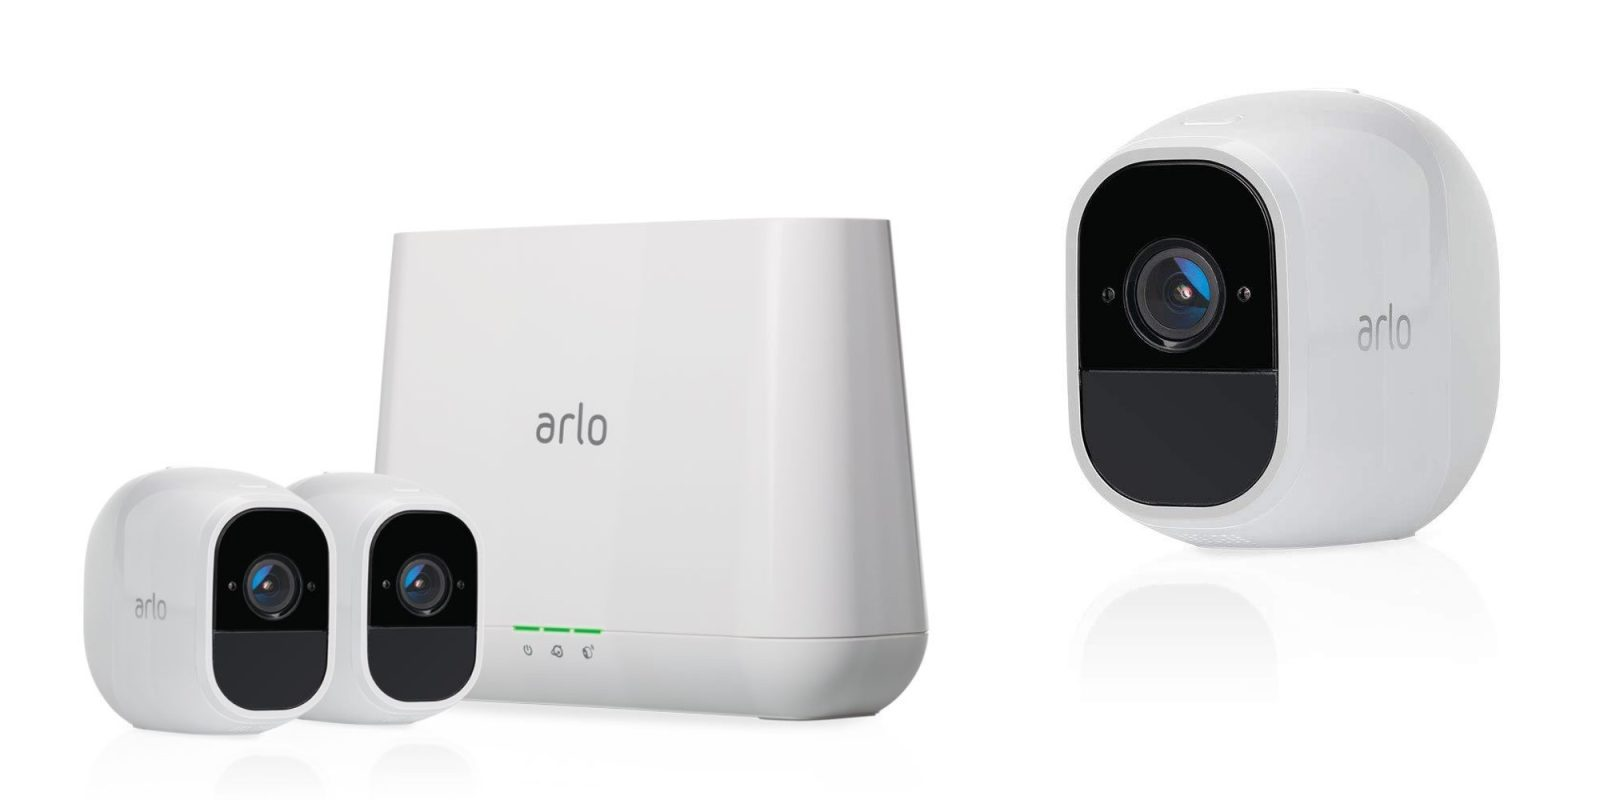 Save on refurbished Arlo Pro 2 HomeKit-compatible camera systems from $120